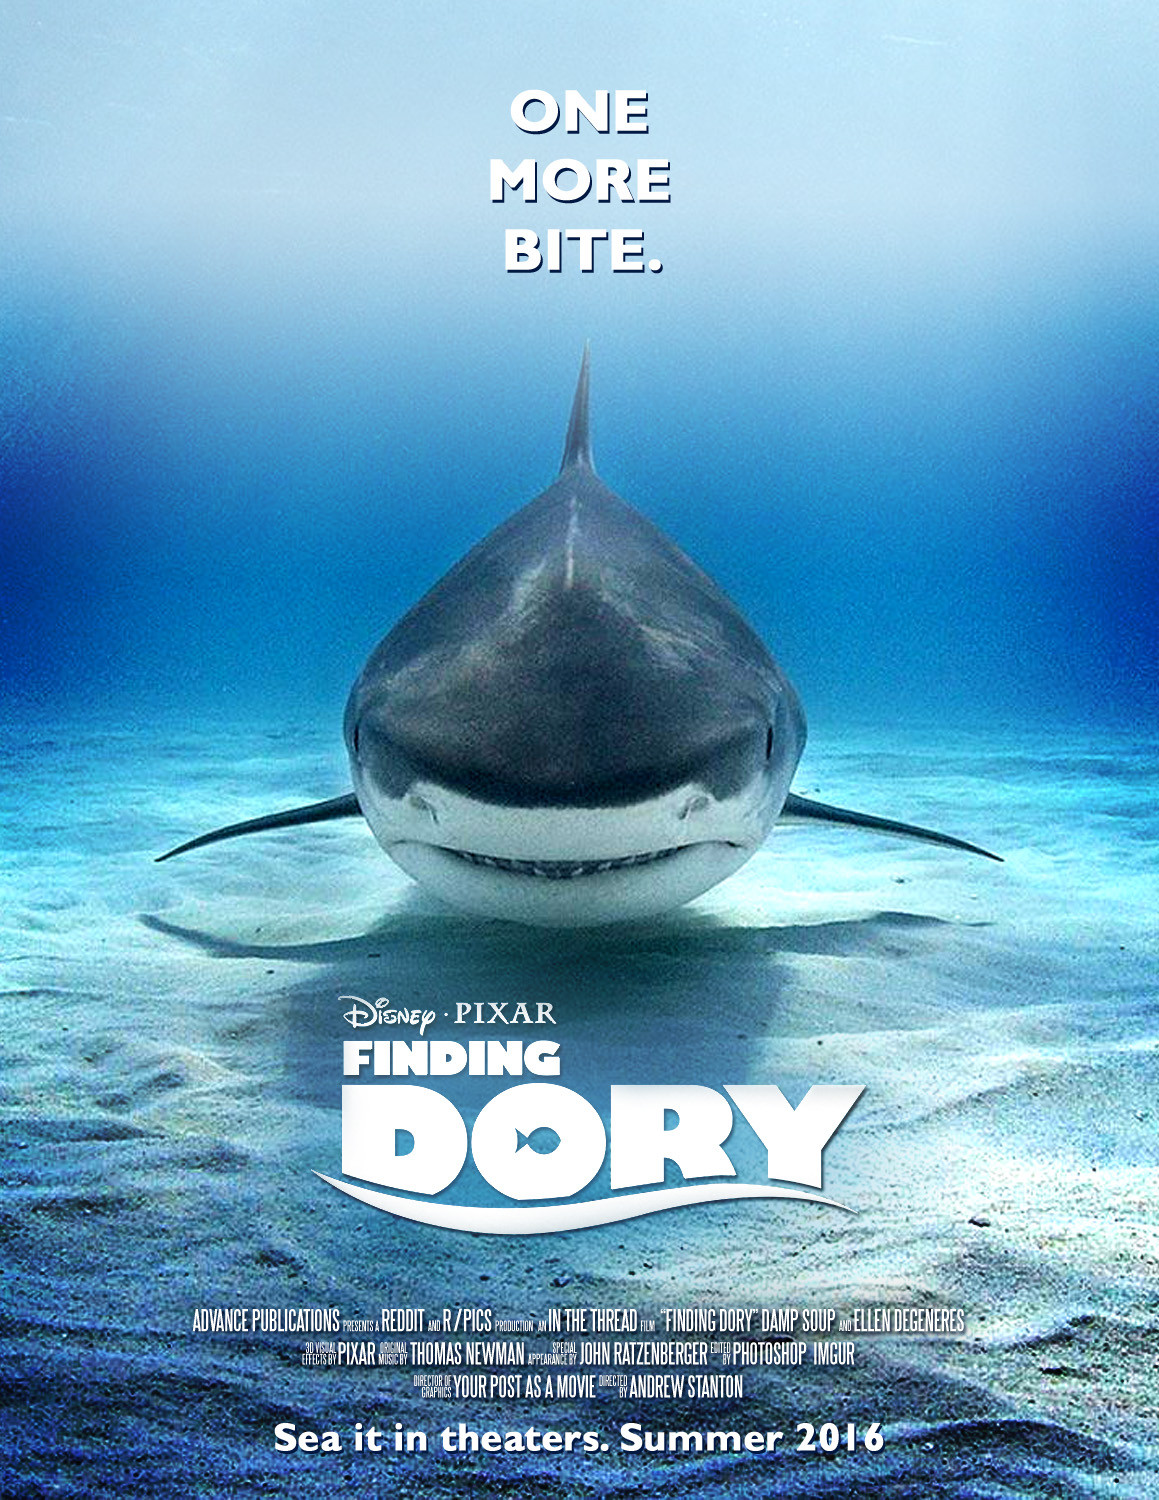 Finding dory blu ray torrent | Torrent Finding Dory 3D 2016 1080p 3D